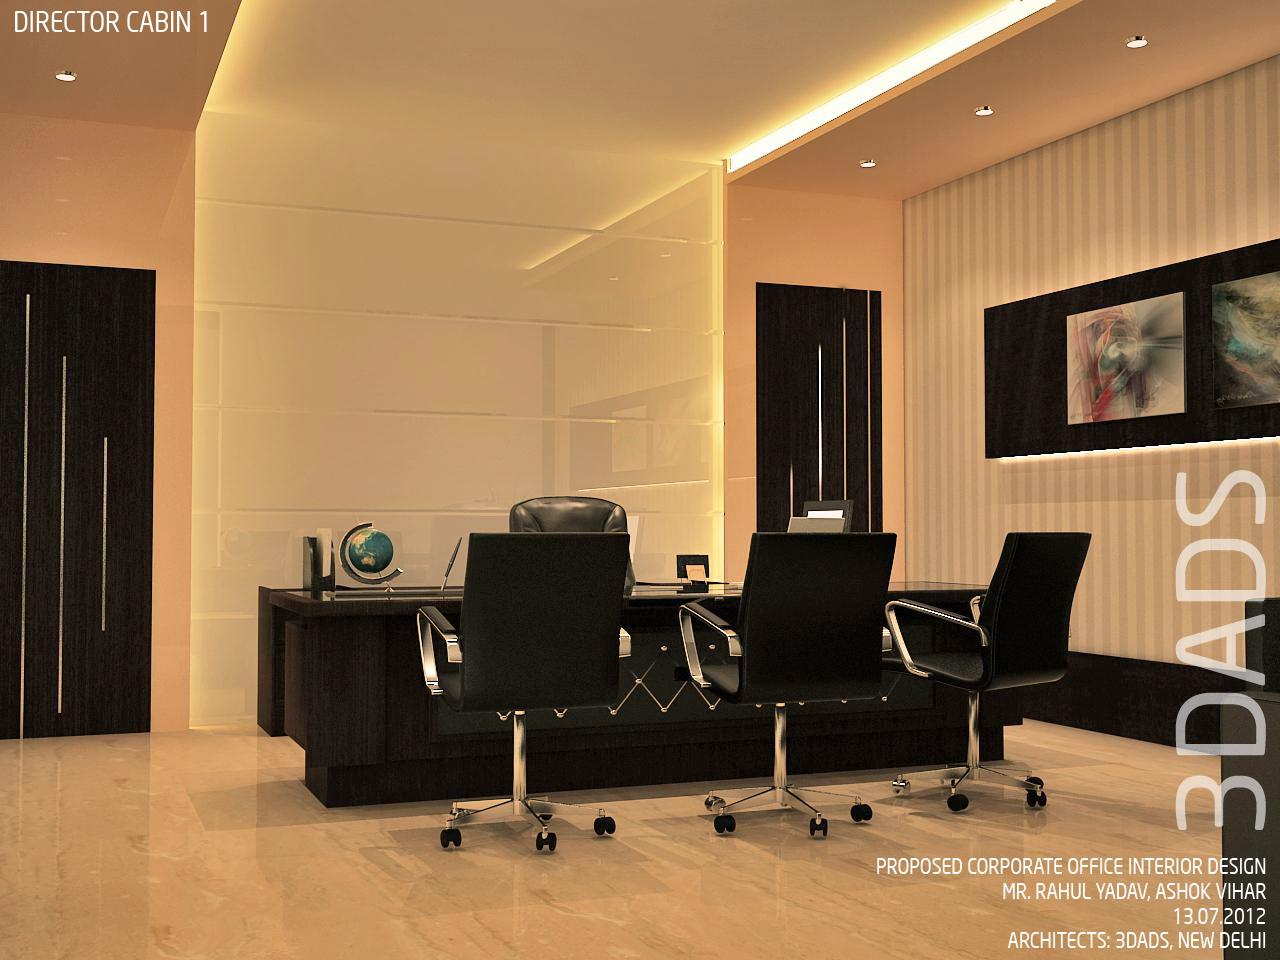 3da: corporate office interior designers in gurgaon & delhi ncr, india